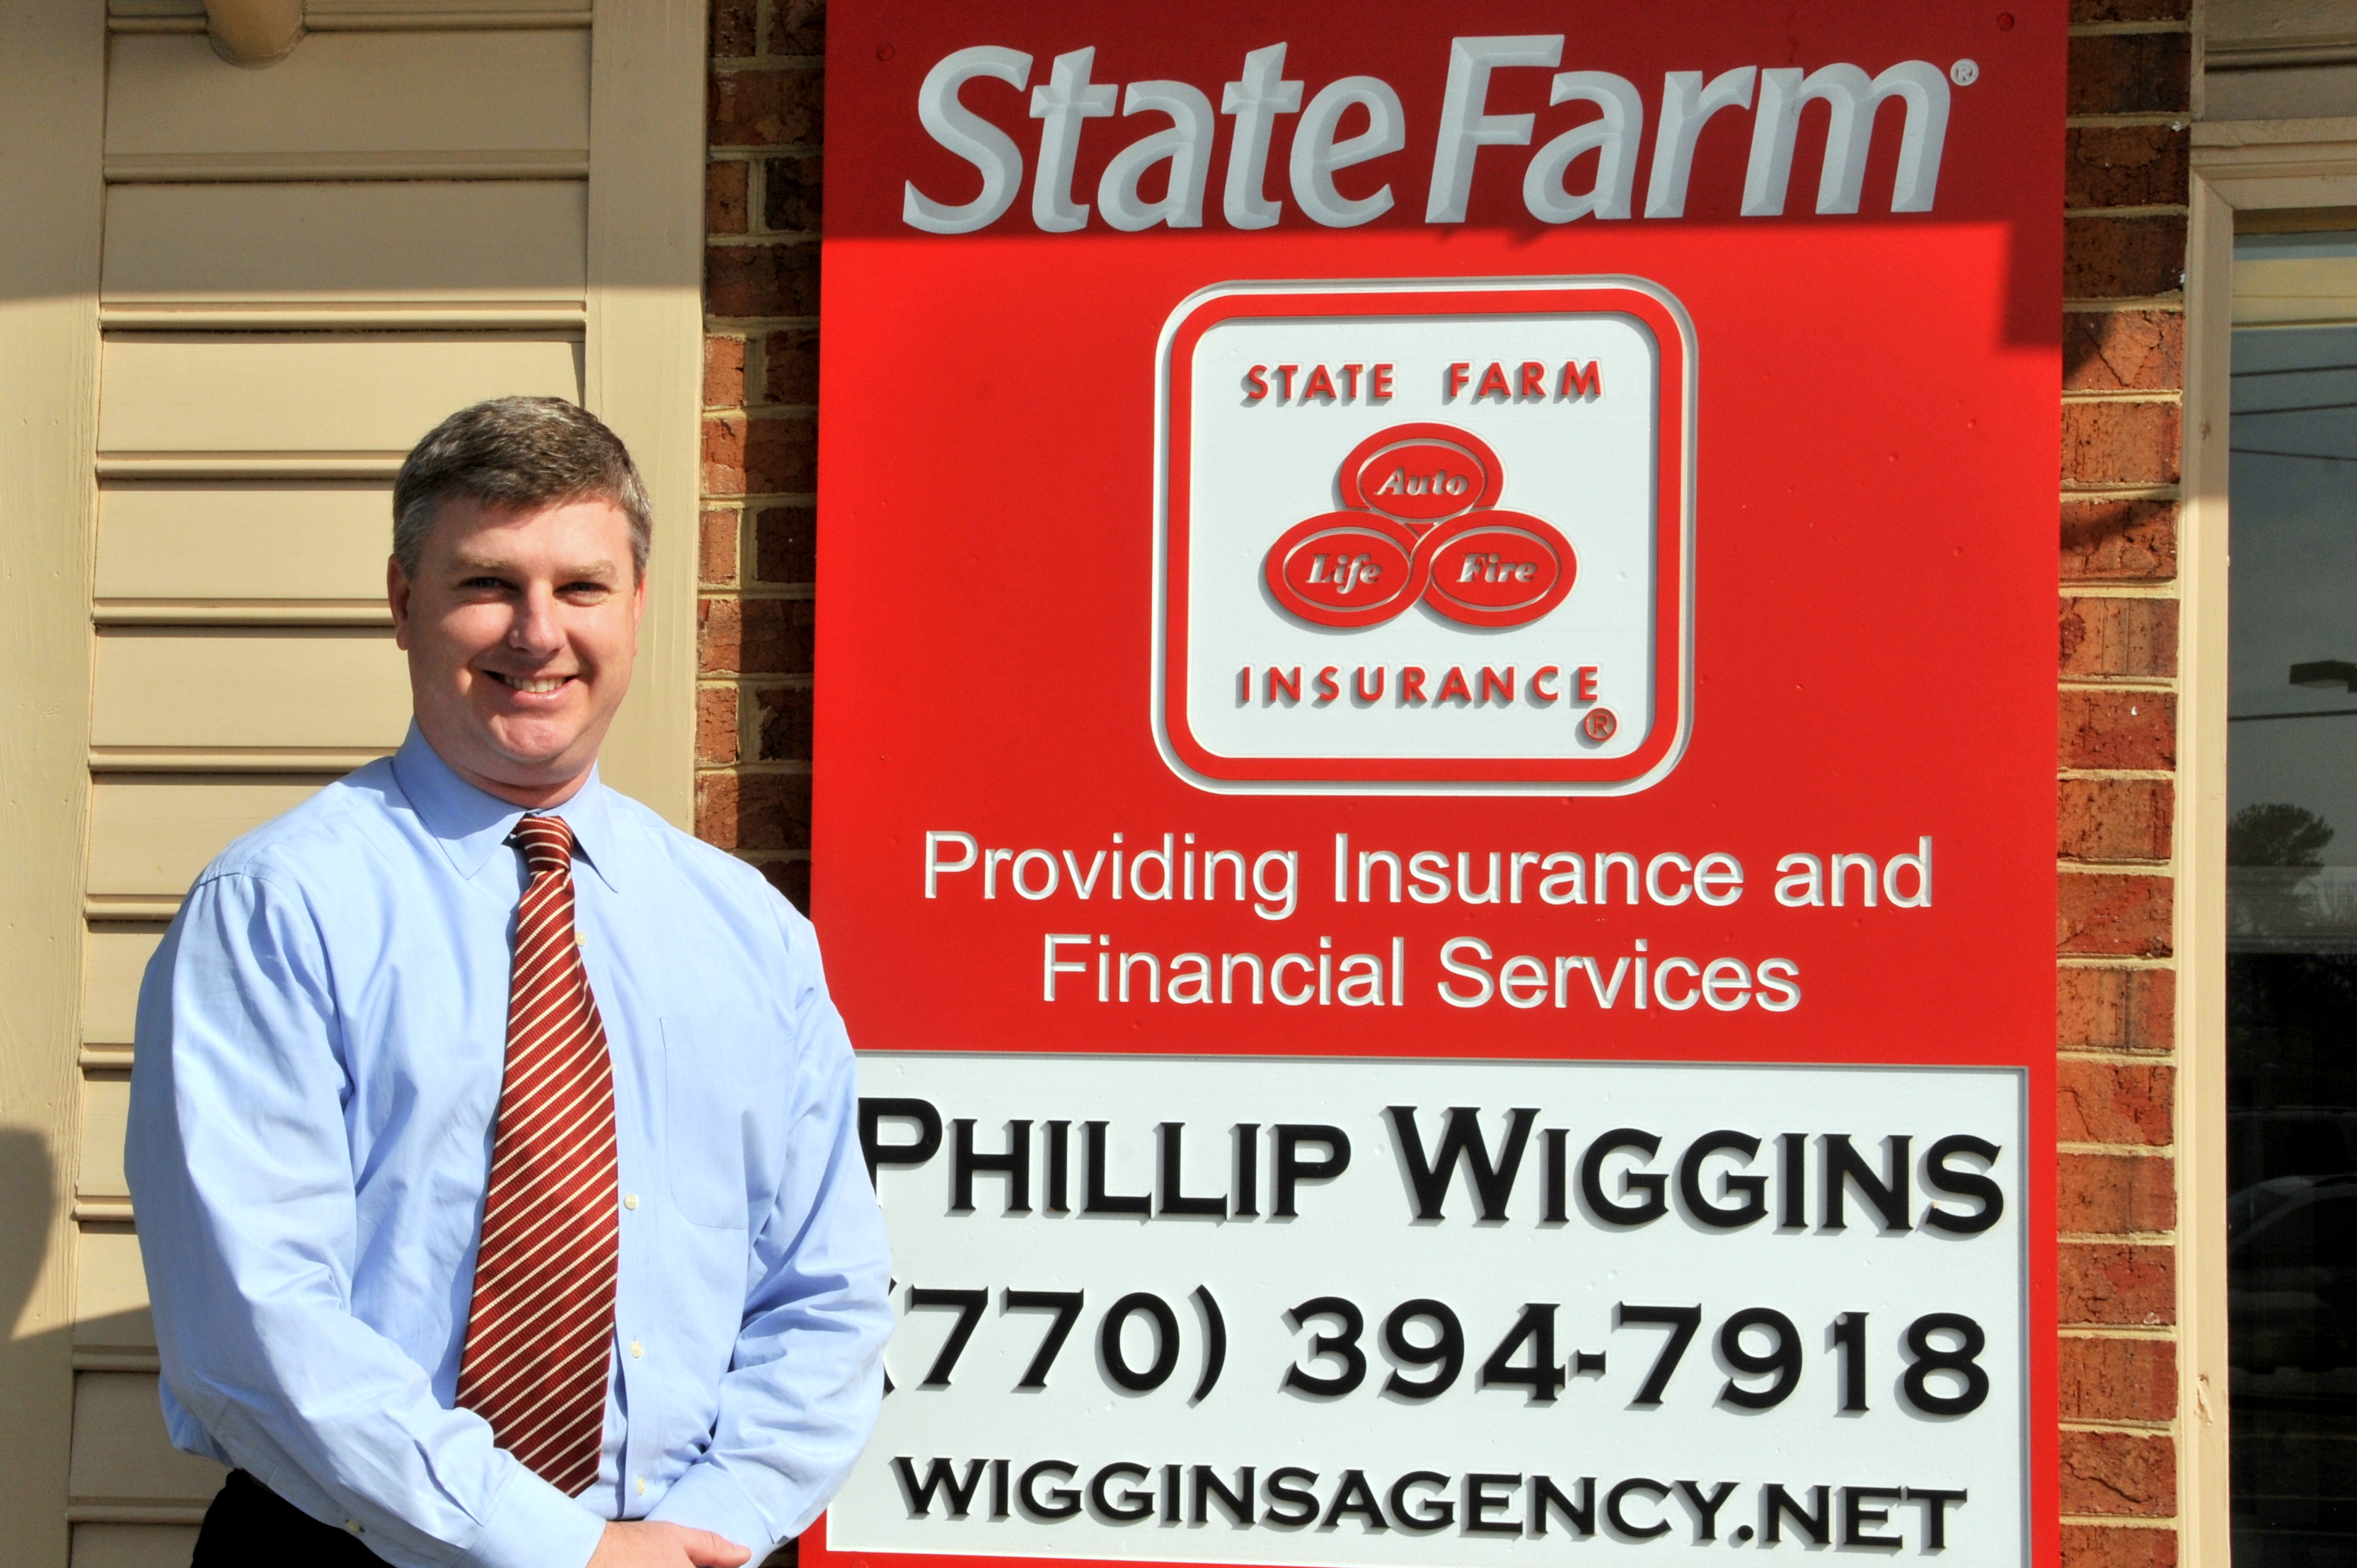 Customer Service Representative State Farm Agent Team Member Property And Casualty Insurance Focus Phillip Wiggins State Farm Agent